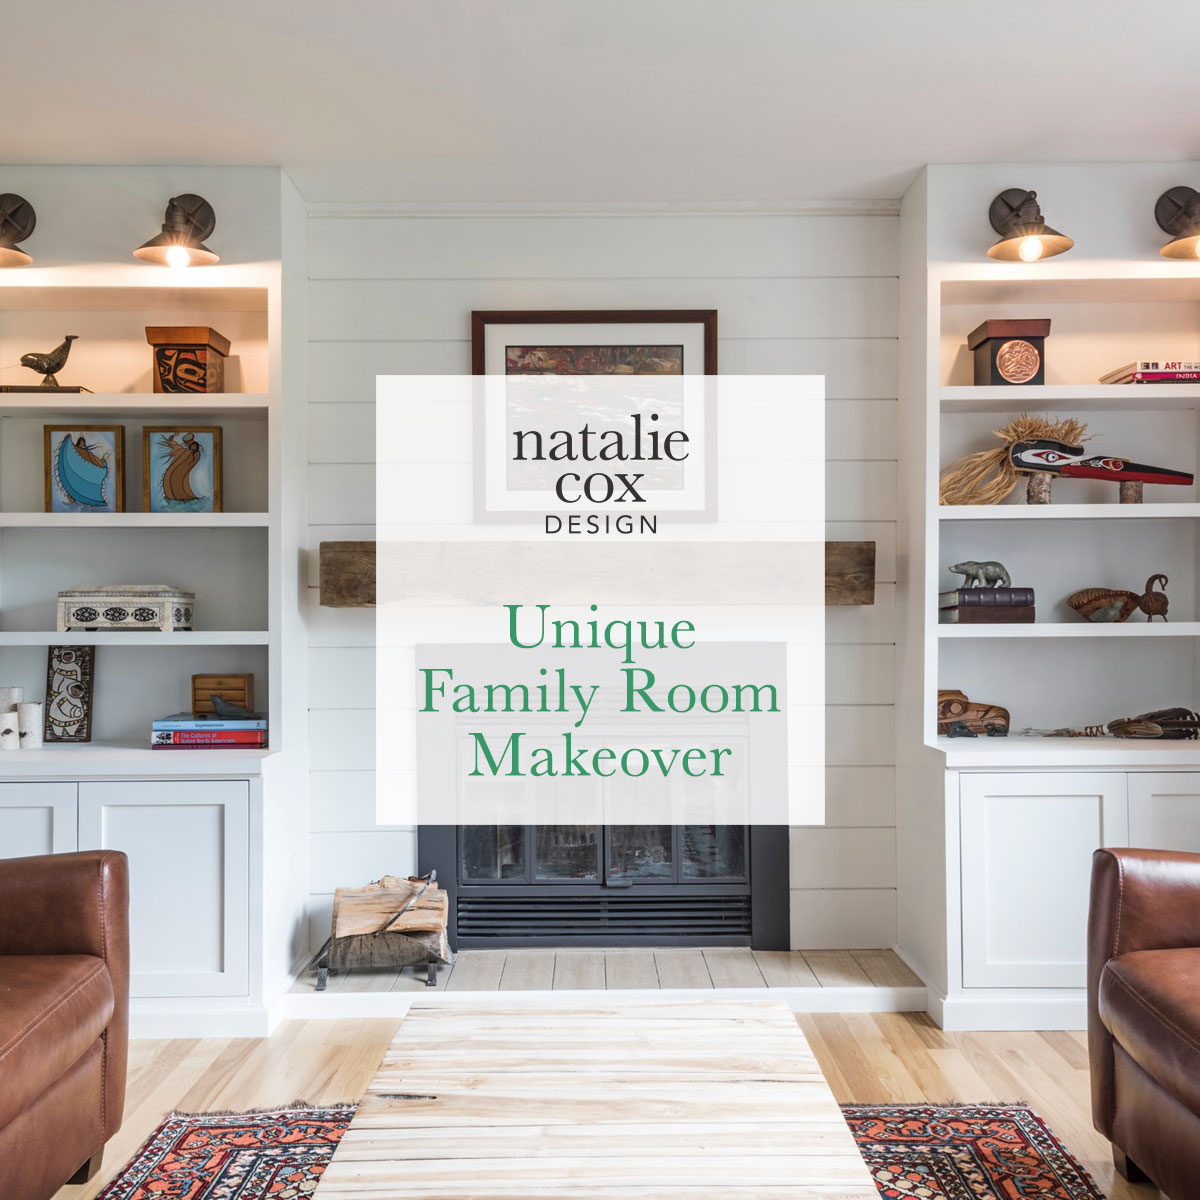 Unique Family Room Makeover - Natalie Cox Design - Interior Decorator - Kanata/Ottawa, Ontario